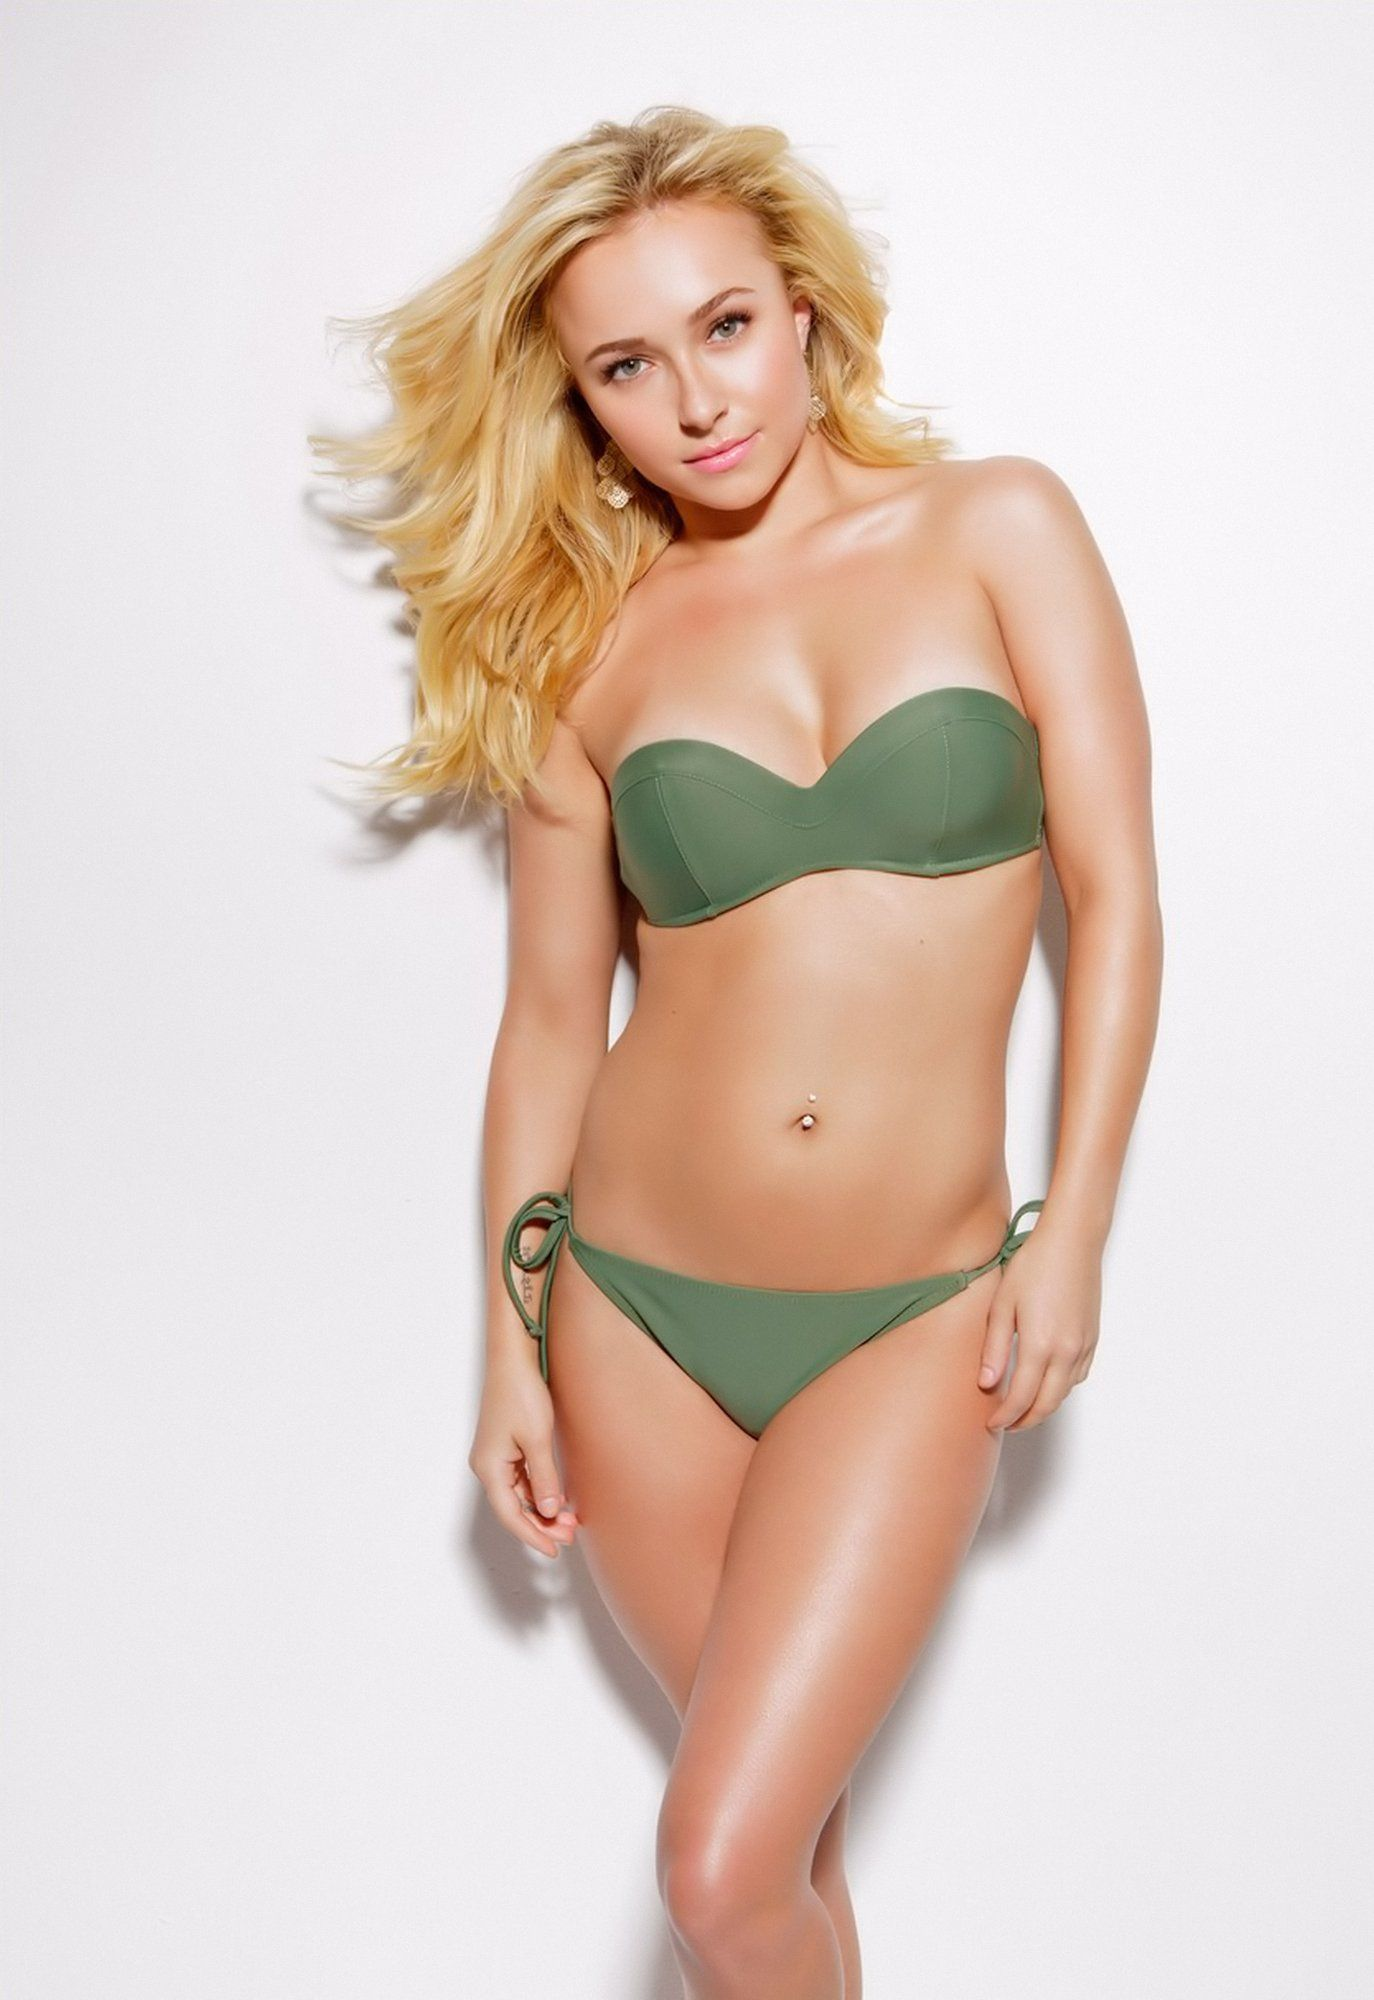 Angelica Celaya En Bikini hayden panettiere strips down to her bikini for esquire